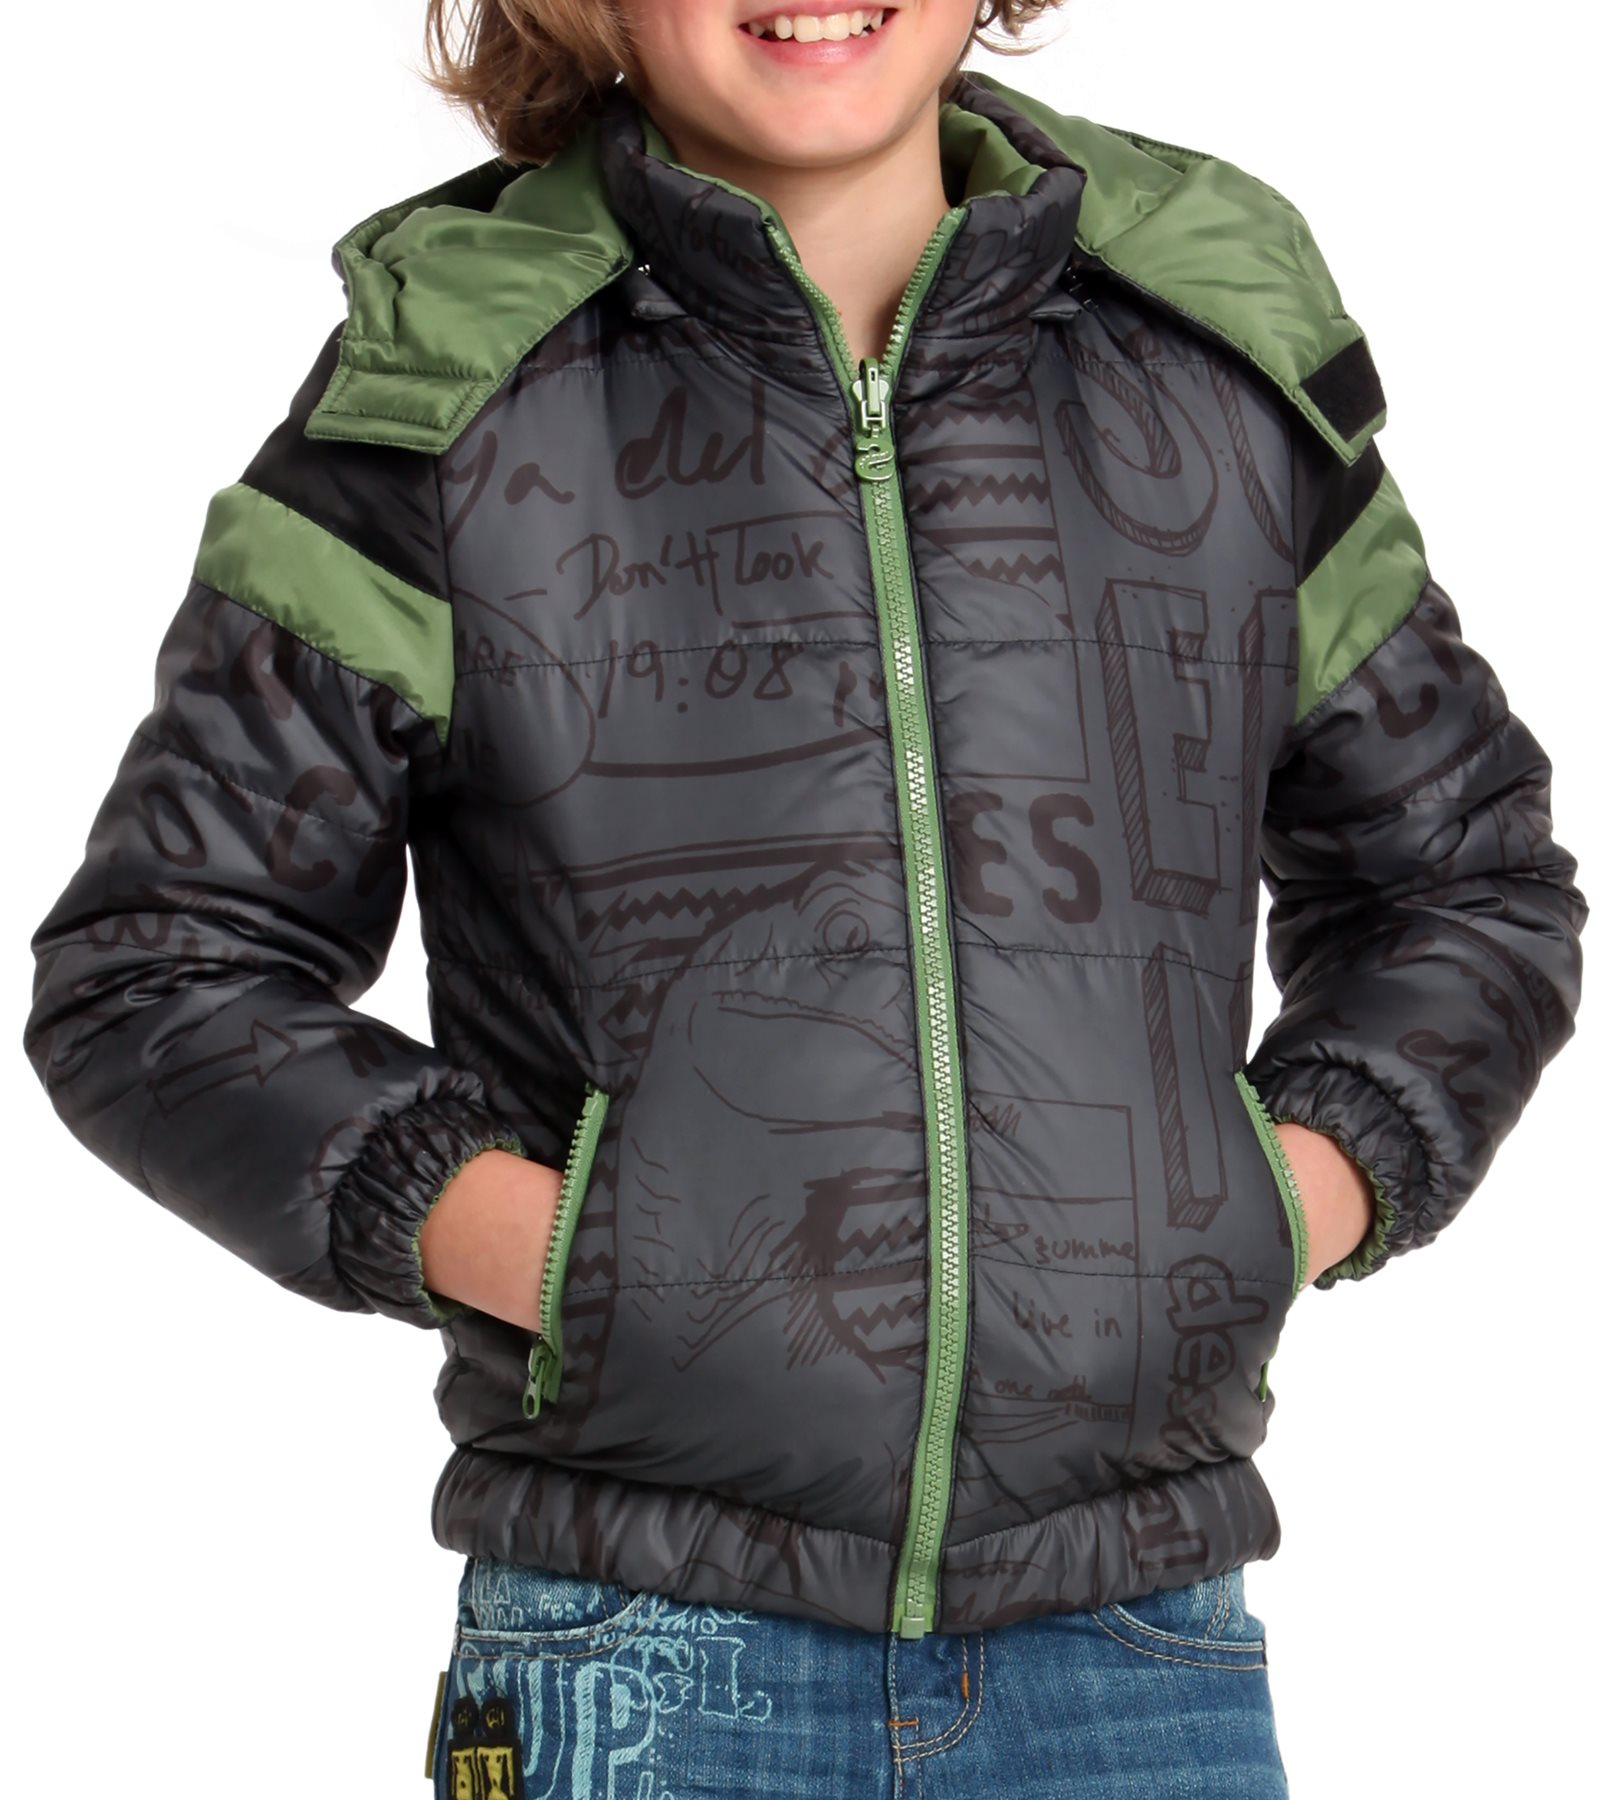 desigual jungenkleidung kids inhouse winterjacke. Black Bedroom Furniture Sets. Home Design Ideas